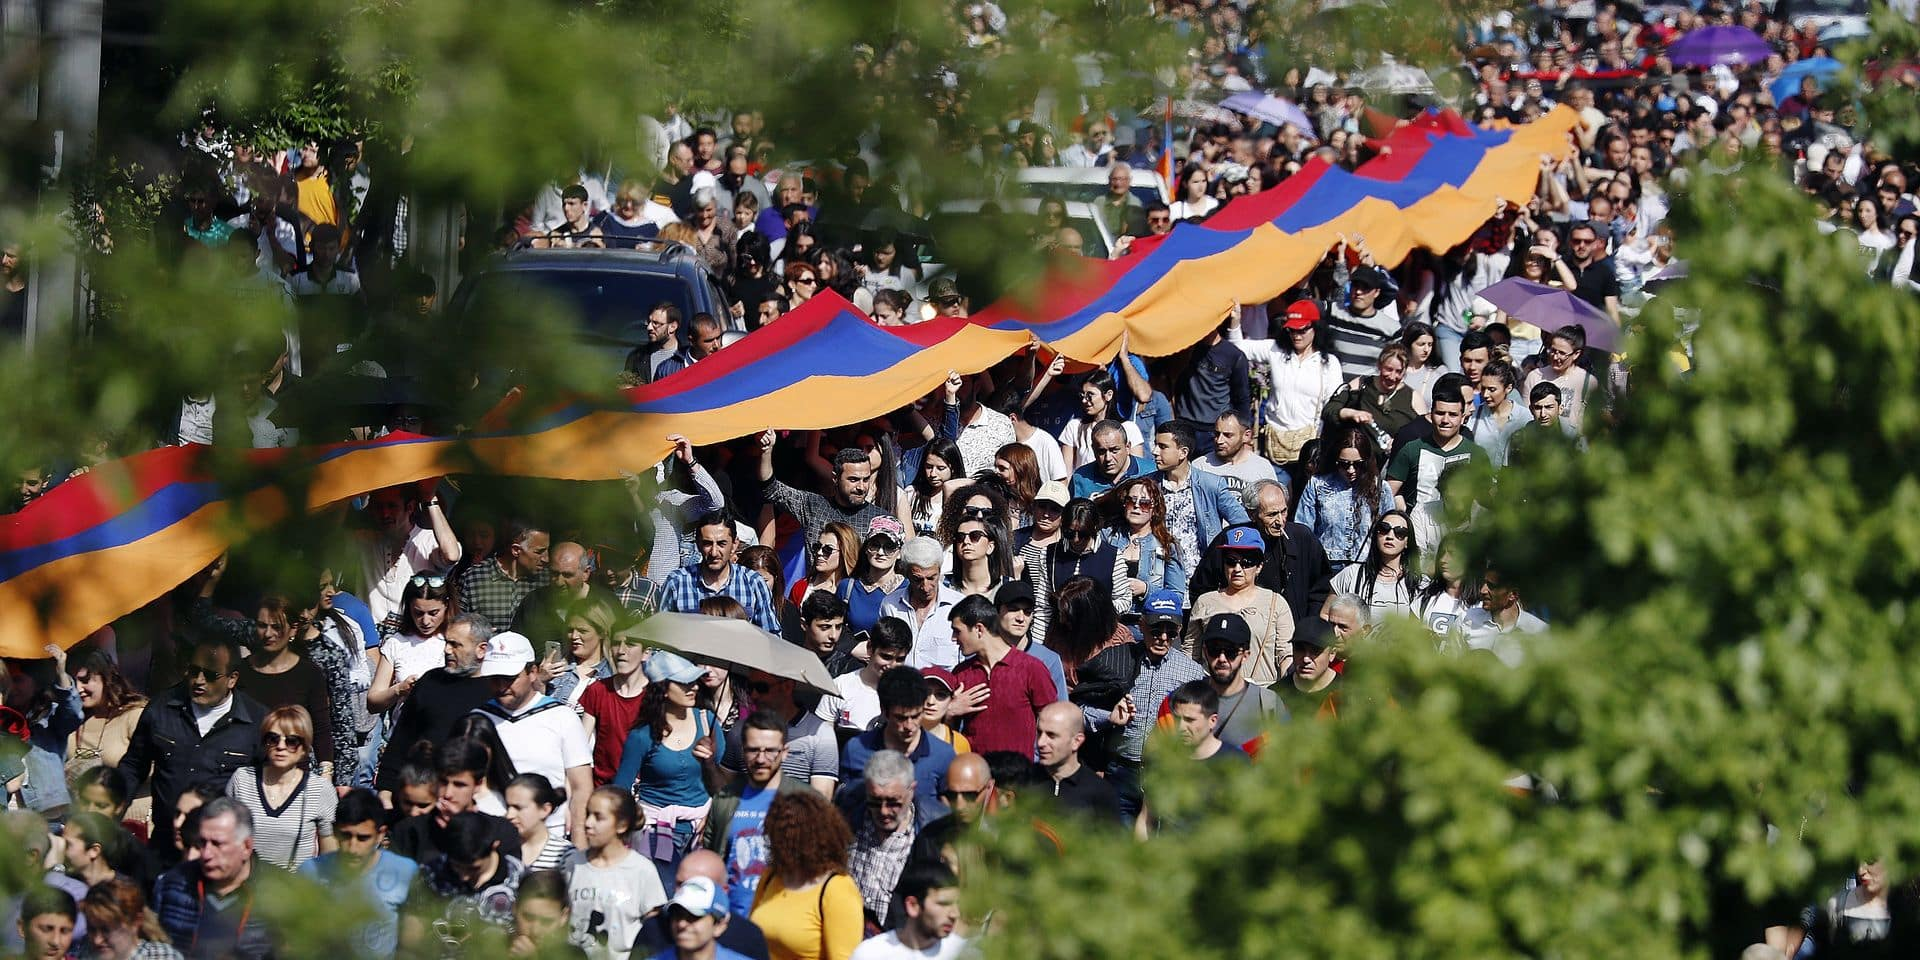 Yerevan, Armenia – April 24, 2018: A huge Armenian national flag seen during an event to commemorate the victims of the early 20th century Armenian genocide in the Ottoman Empire. Photo by Artyom Geodakyan/TASS/ABACAPRESS.COM